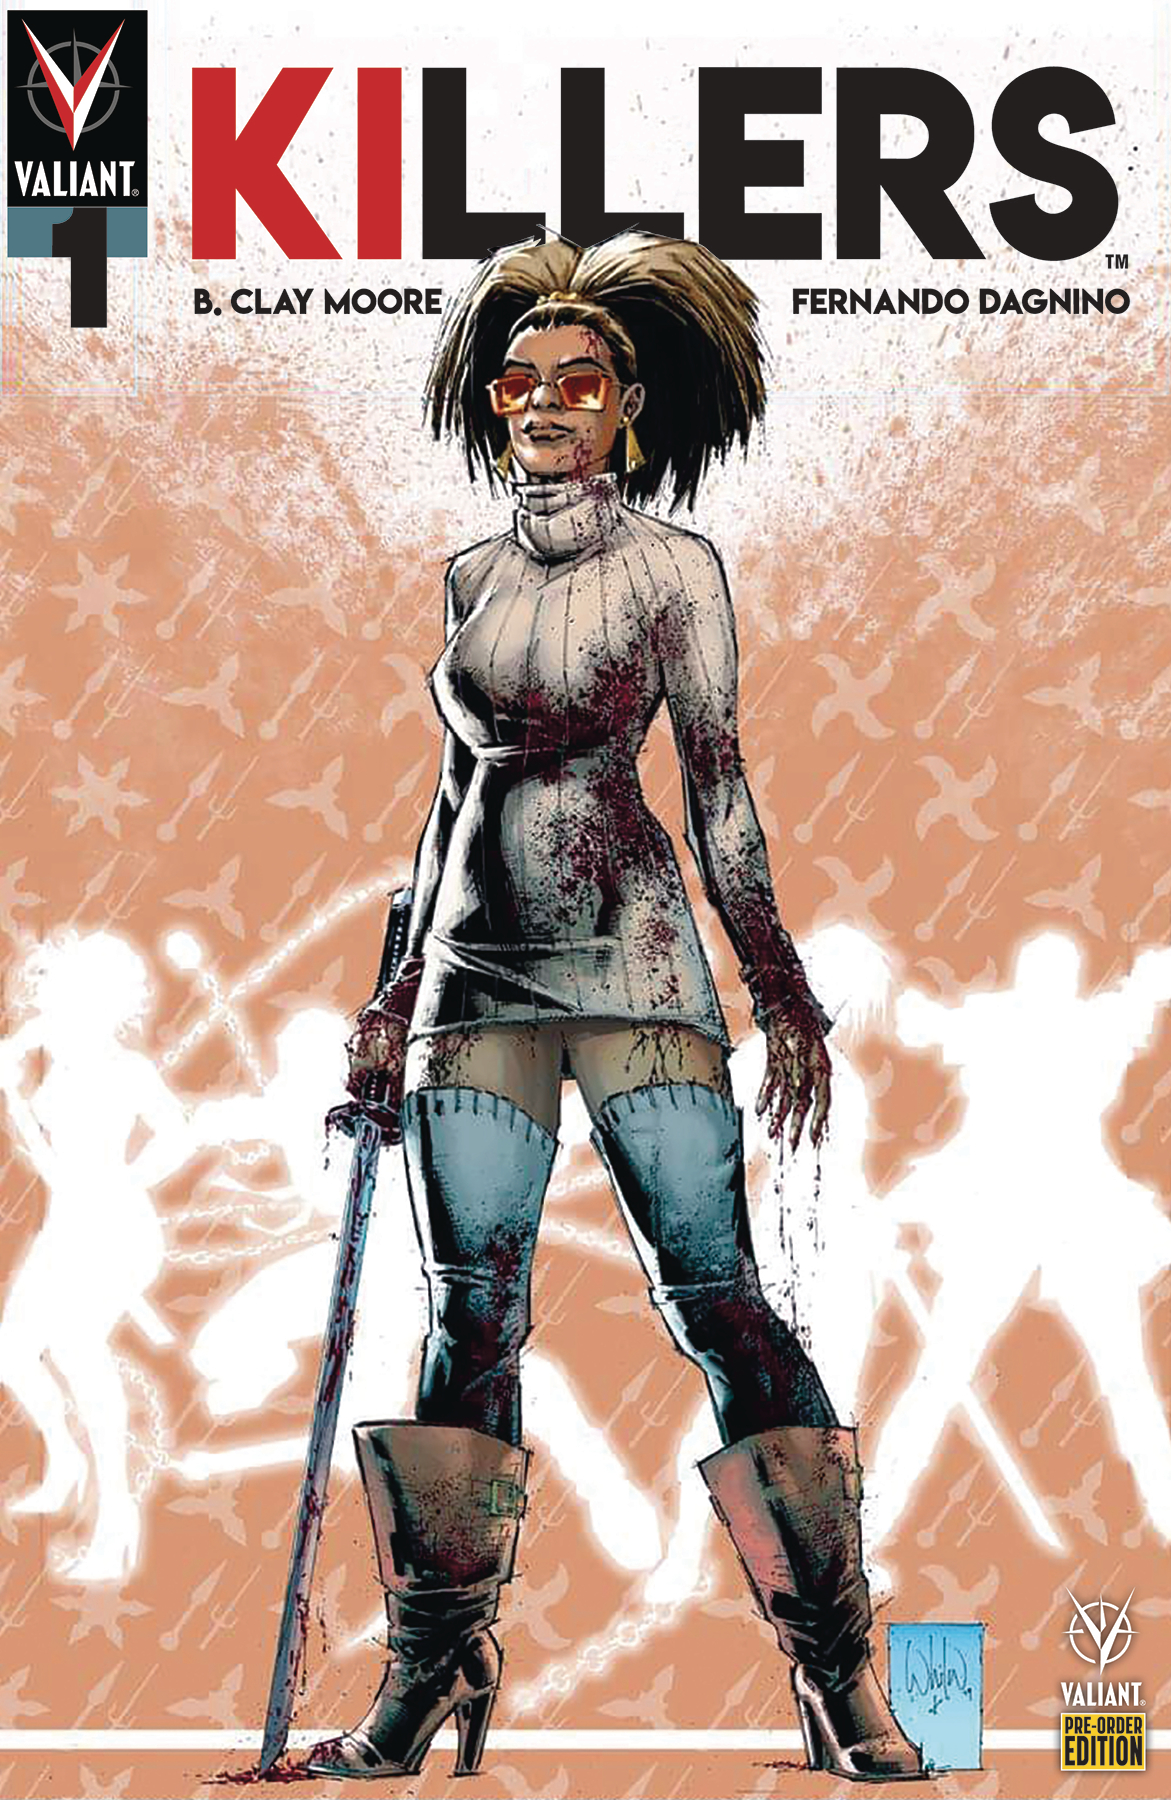 KILLERS #1 (OF 5) CVR F #1-5 PREORDER BUNDLE ED